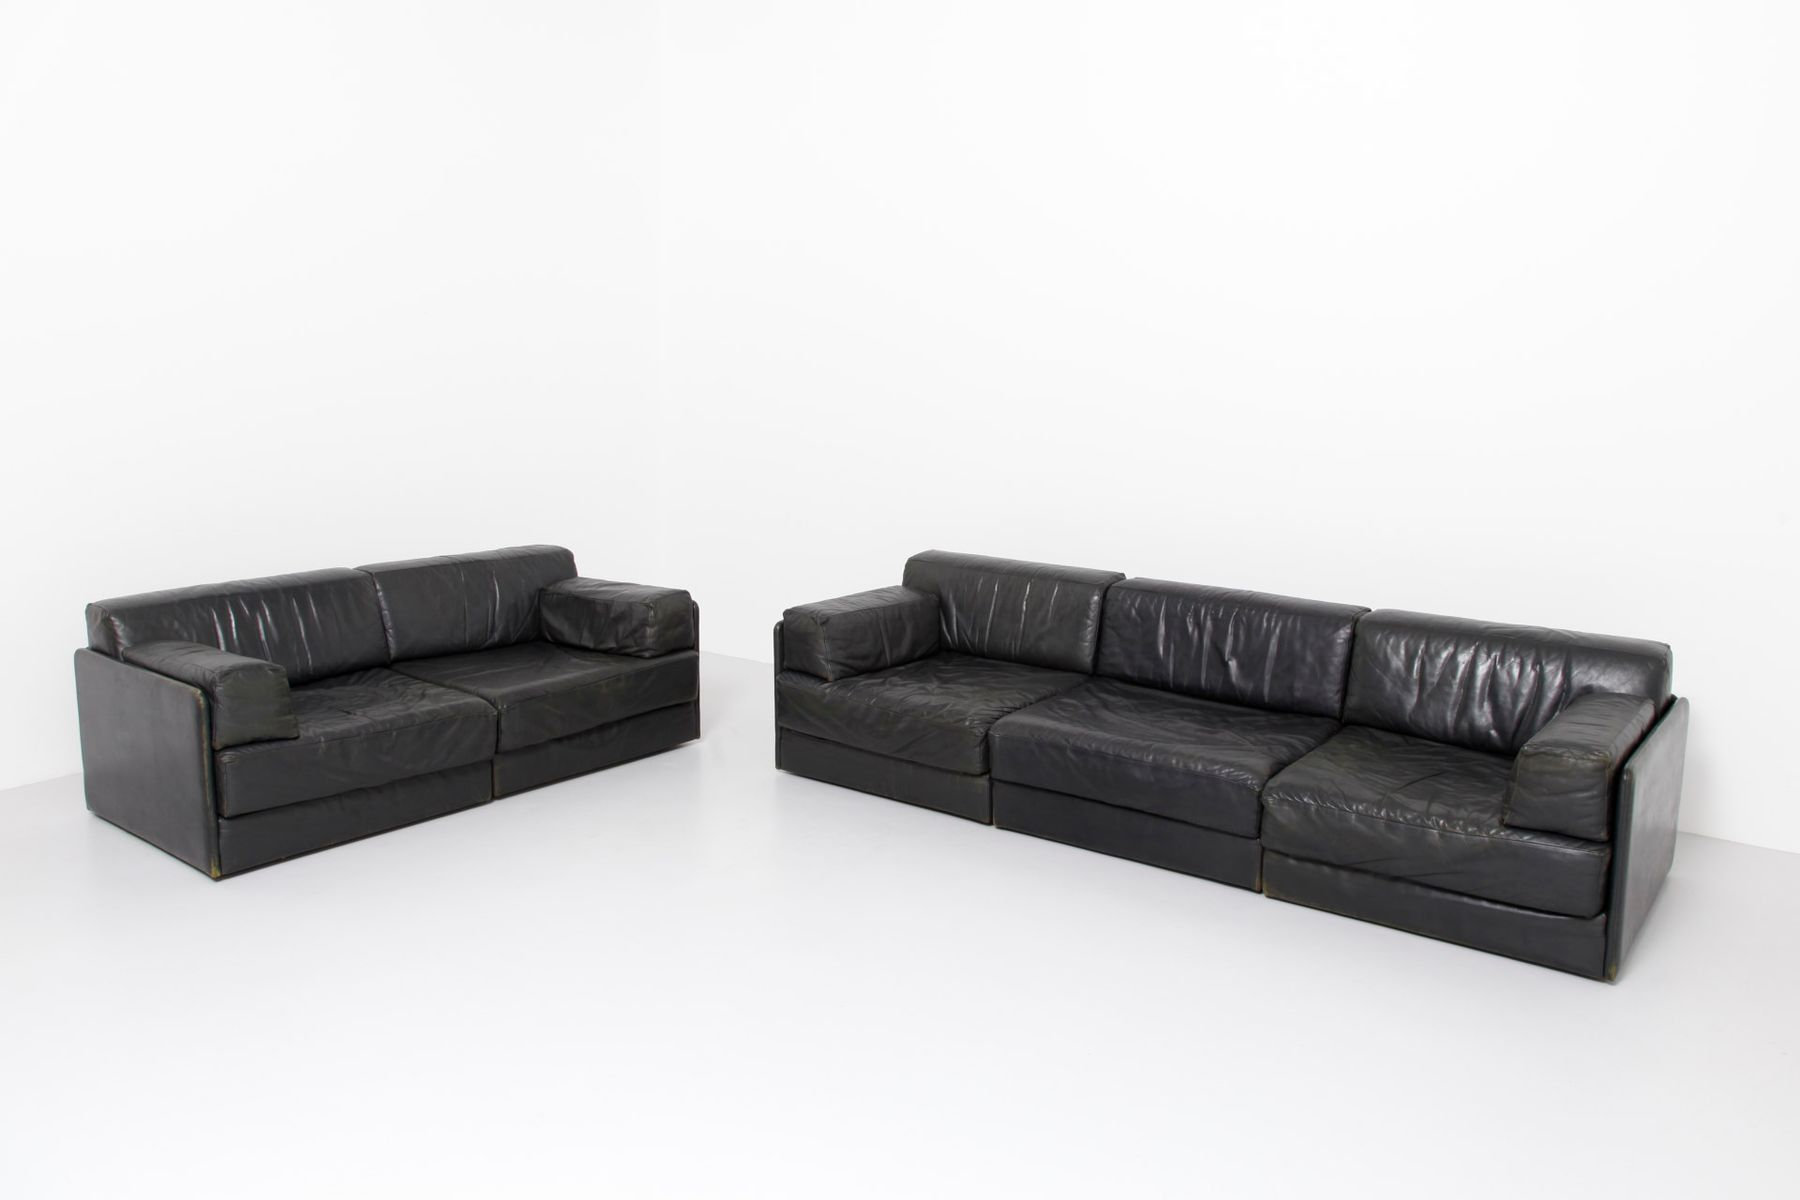 ds 76 sofa elemente von de sede 1960er 5er set bei. Black Bedroom Furniture Sets. Home Design Ideas